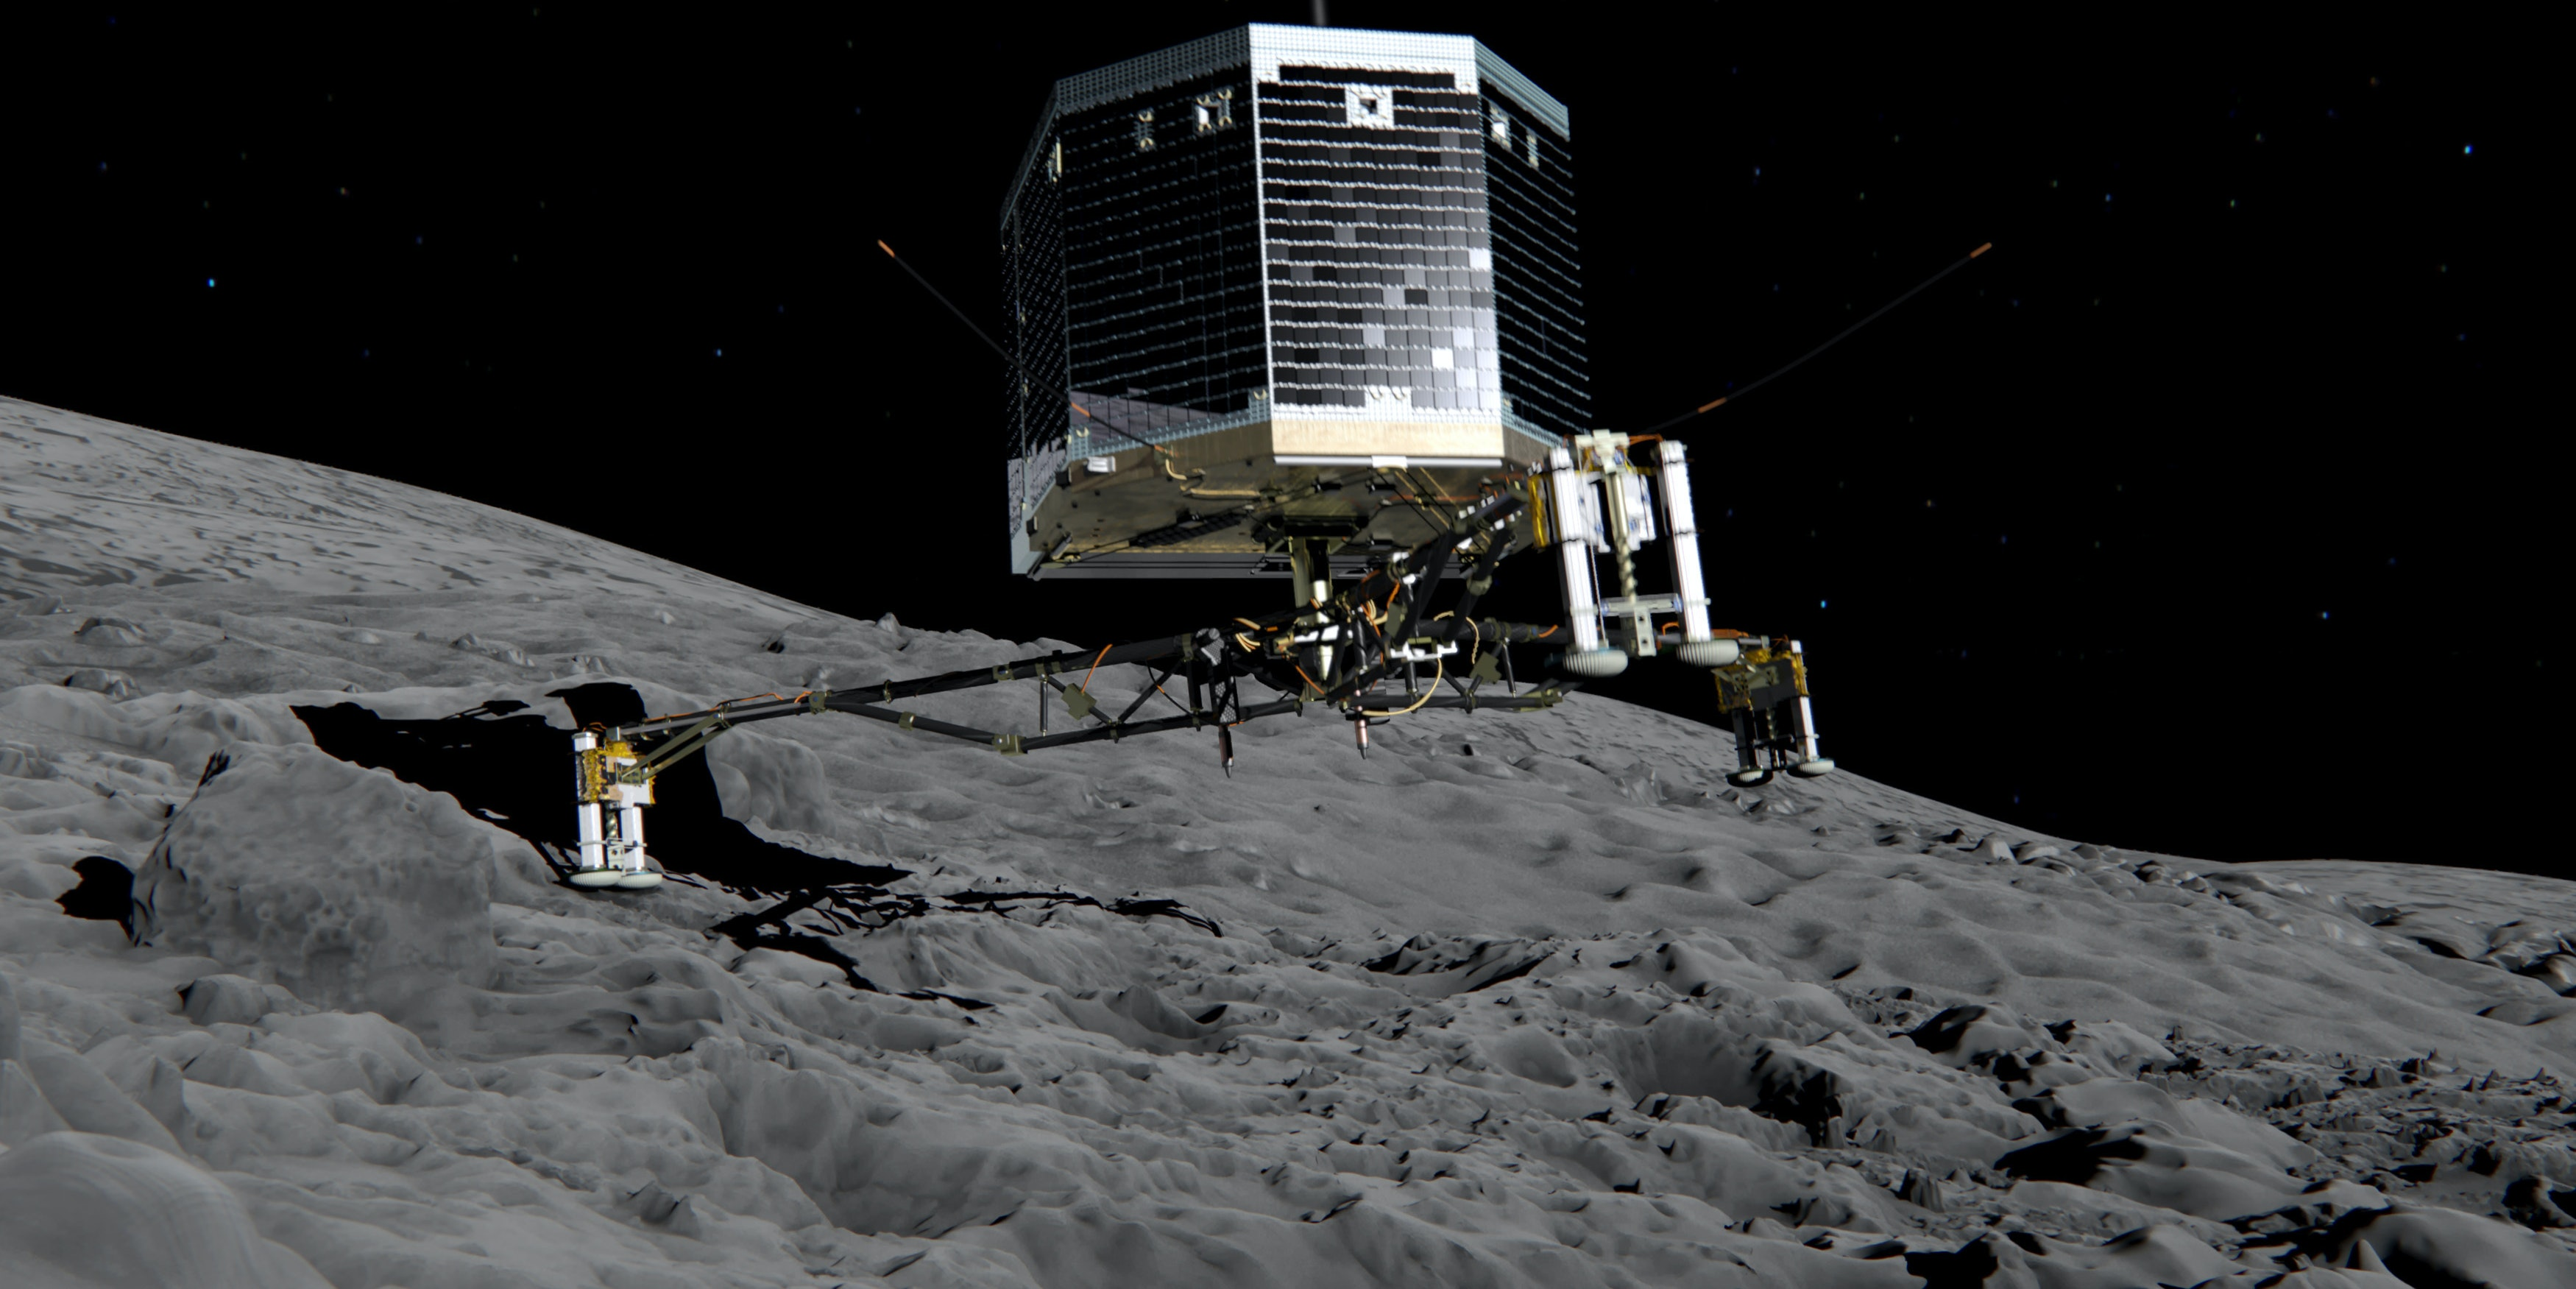 DARMSTADT, GERMANY - NOVEMBER 12:  (EDITORIAL USE ONLY) In this February 17, 2014 handout photo illustration provided by the European Space Agency (ESA) the Philae lander is pictured descending onto the 67P/Churyumov-Gerasimenko comet. ESA will attempt to land the Philae lander onto the comet in the afternoon (GMT) of November 12 which, if successful, will be the first time ever that a man-made craft has landed onto a comet. The Philae lander, launched from the Rosetta probe, is a mini laboratory that will harpoon itself to the surface, though a problem with a gas thruster detected November 11 is making the outcome of the landing uncertain.  (Photo ESA via Getty Images)